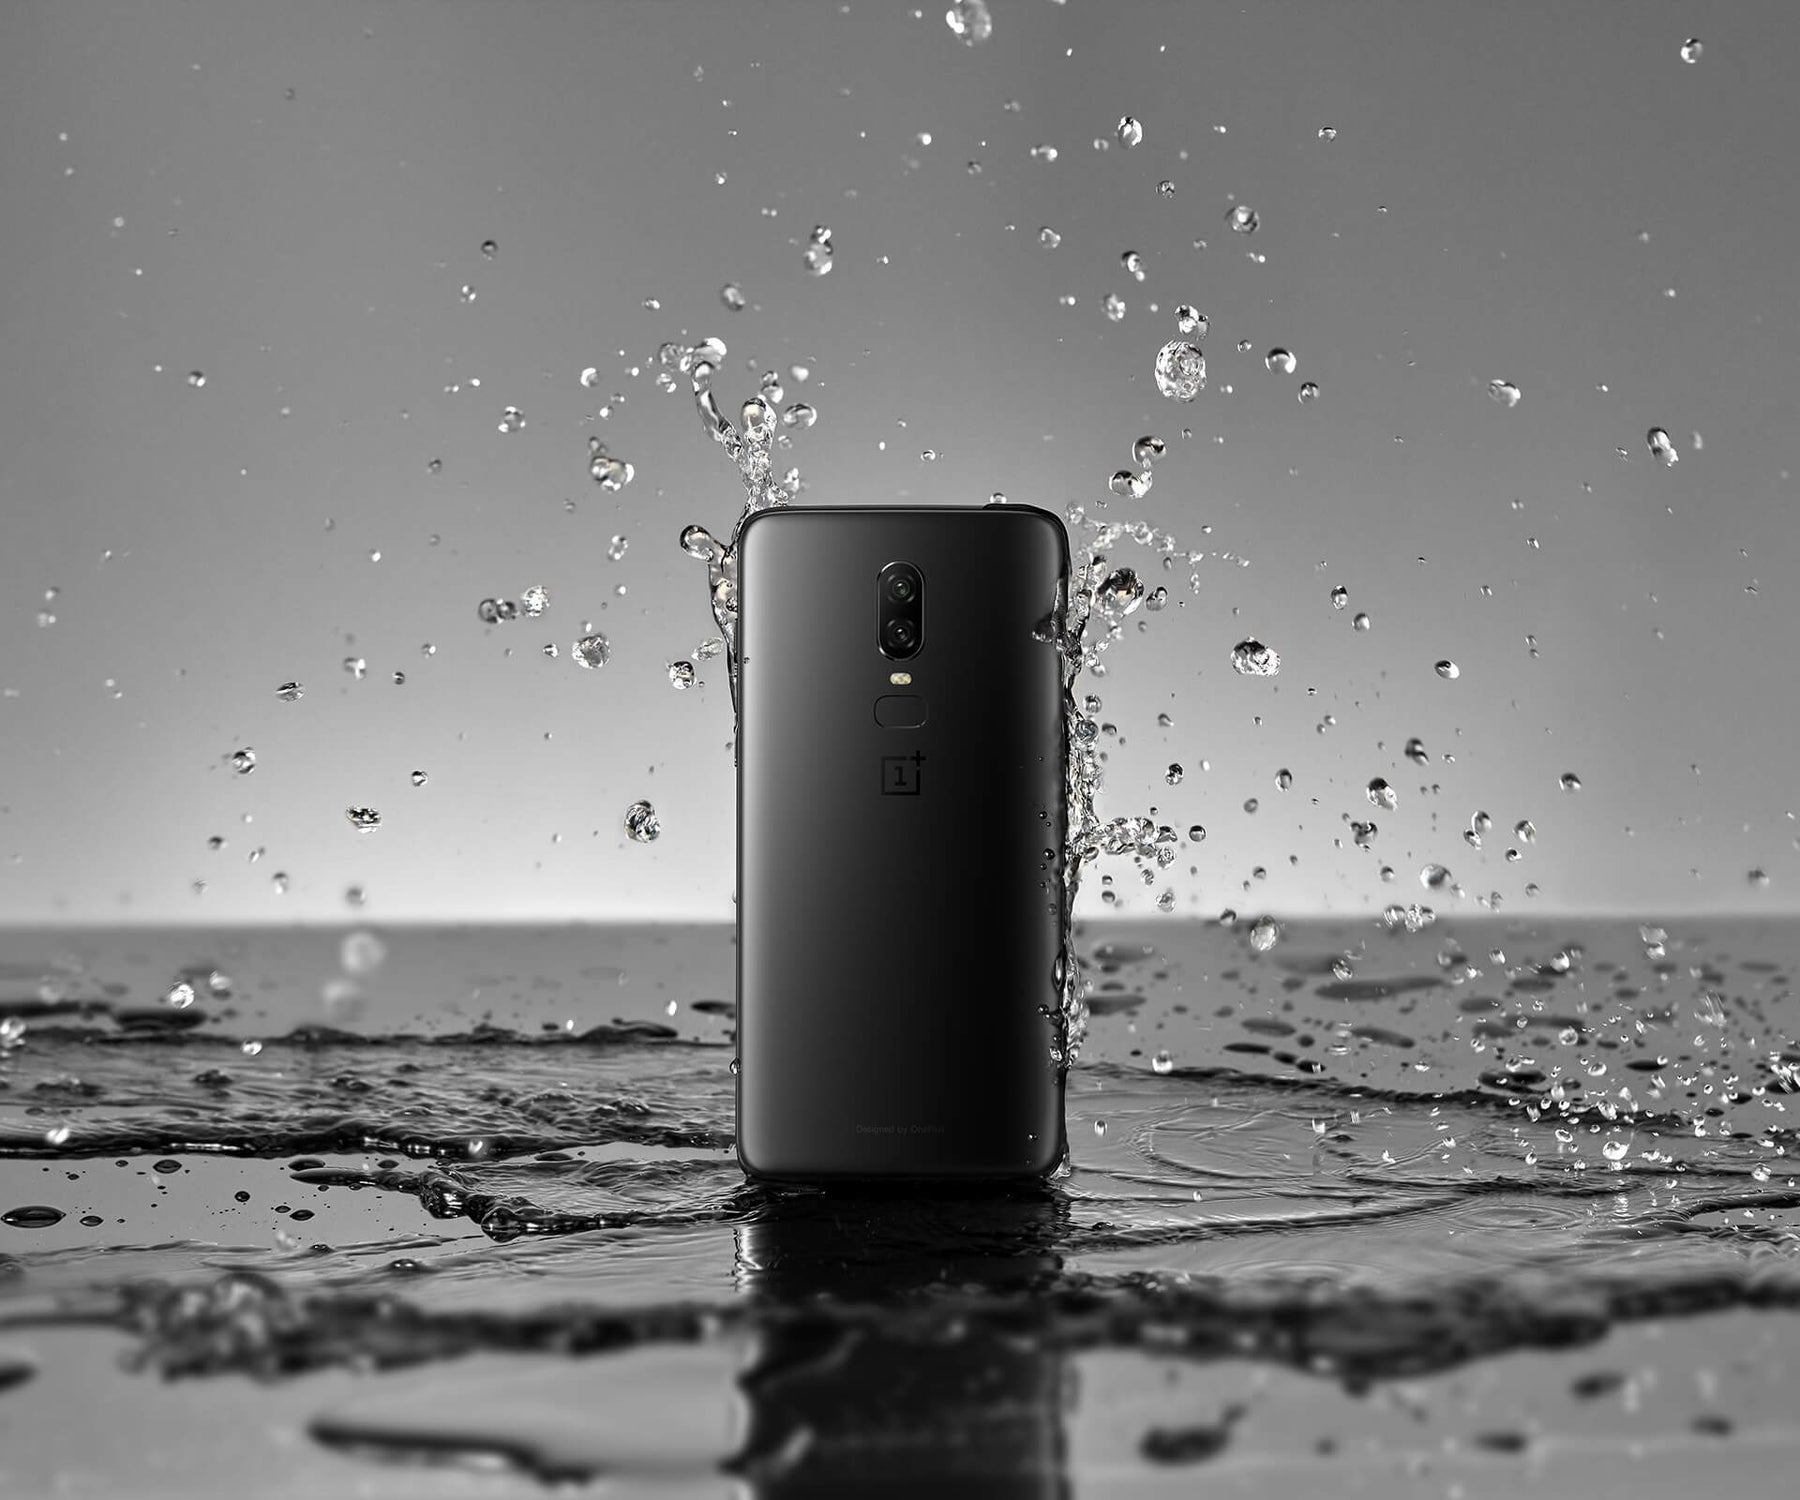 Is the New OnePlus 6 Water Resistant? Well, Yes and No